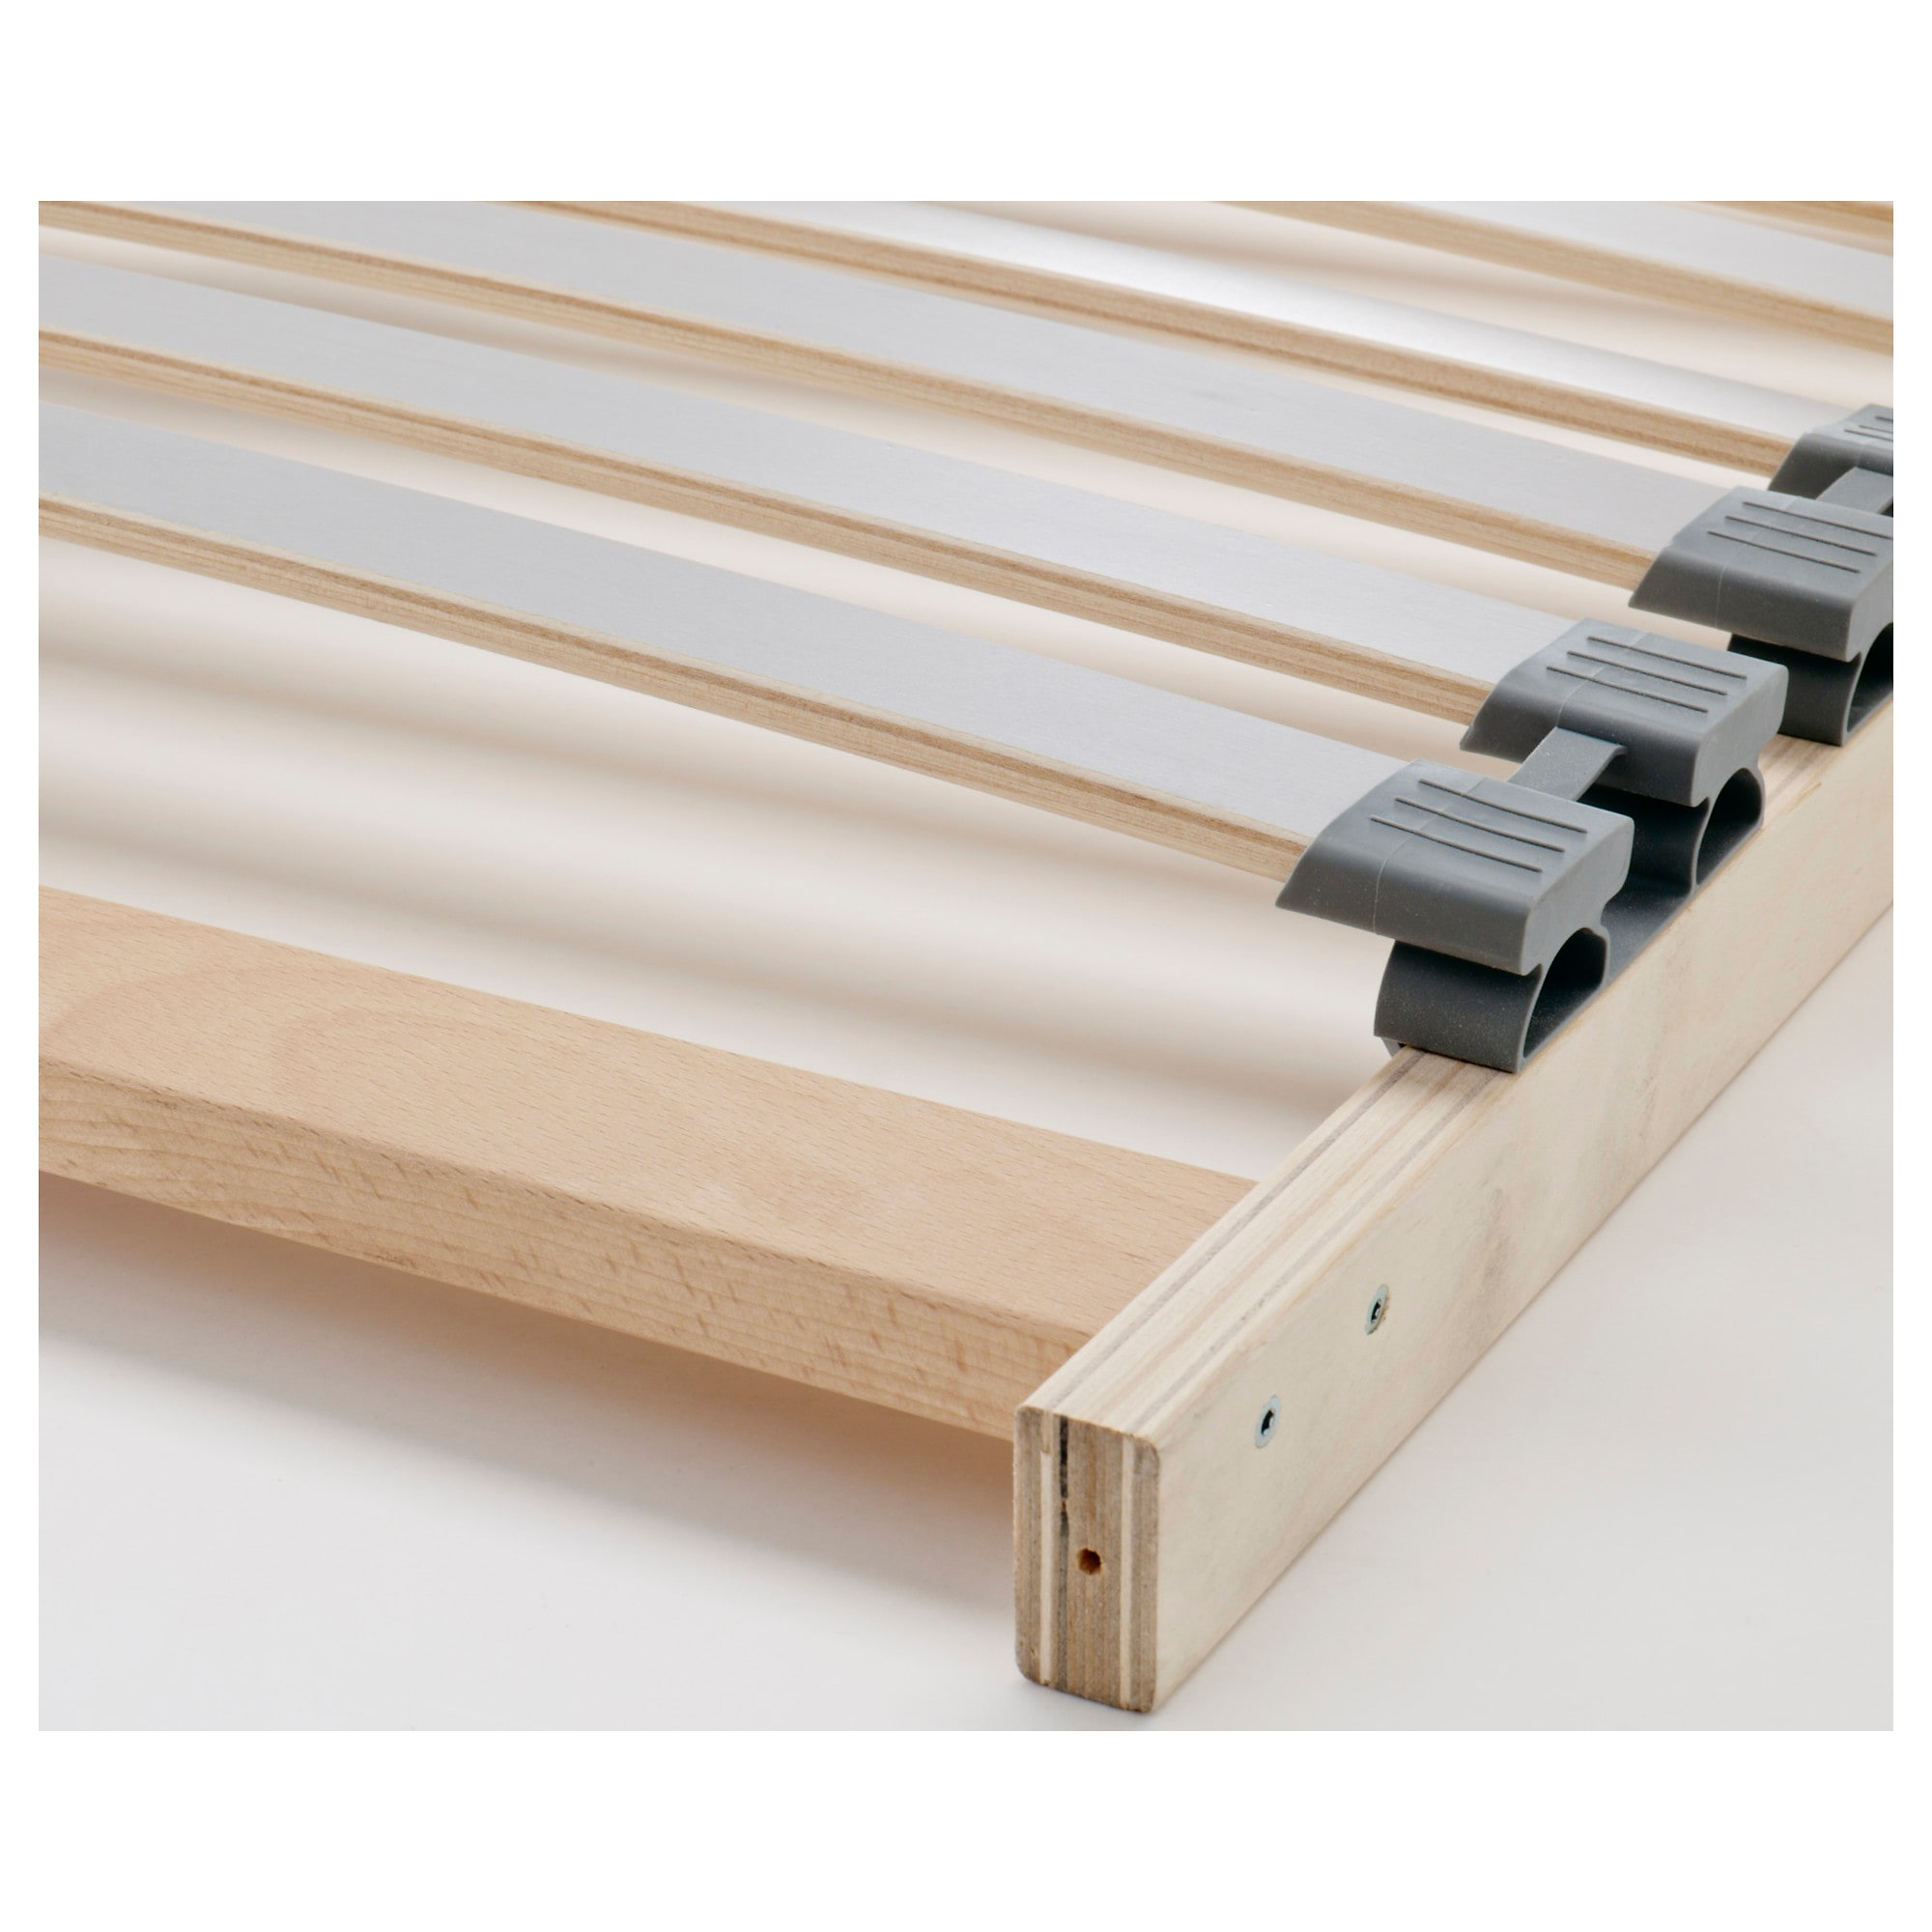 L–NSET Slatted bed base Queen IKEA